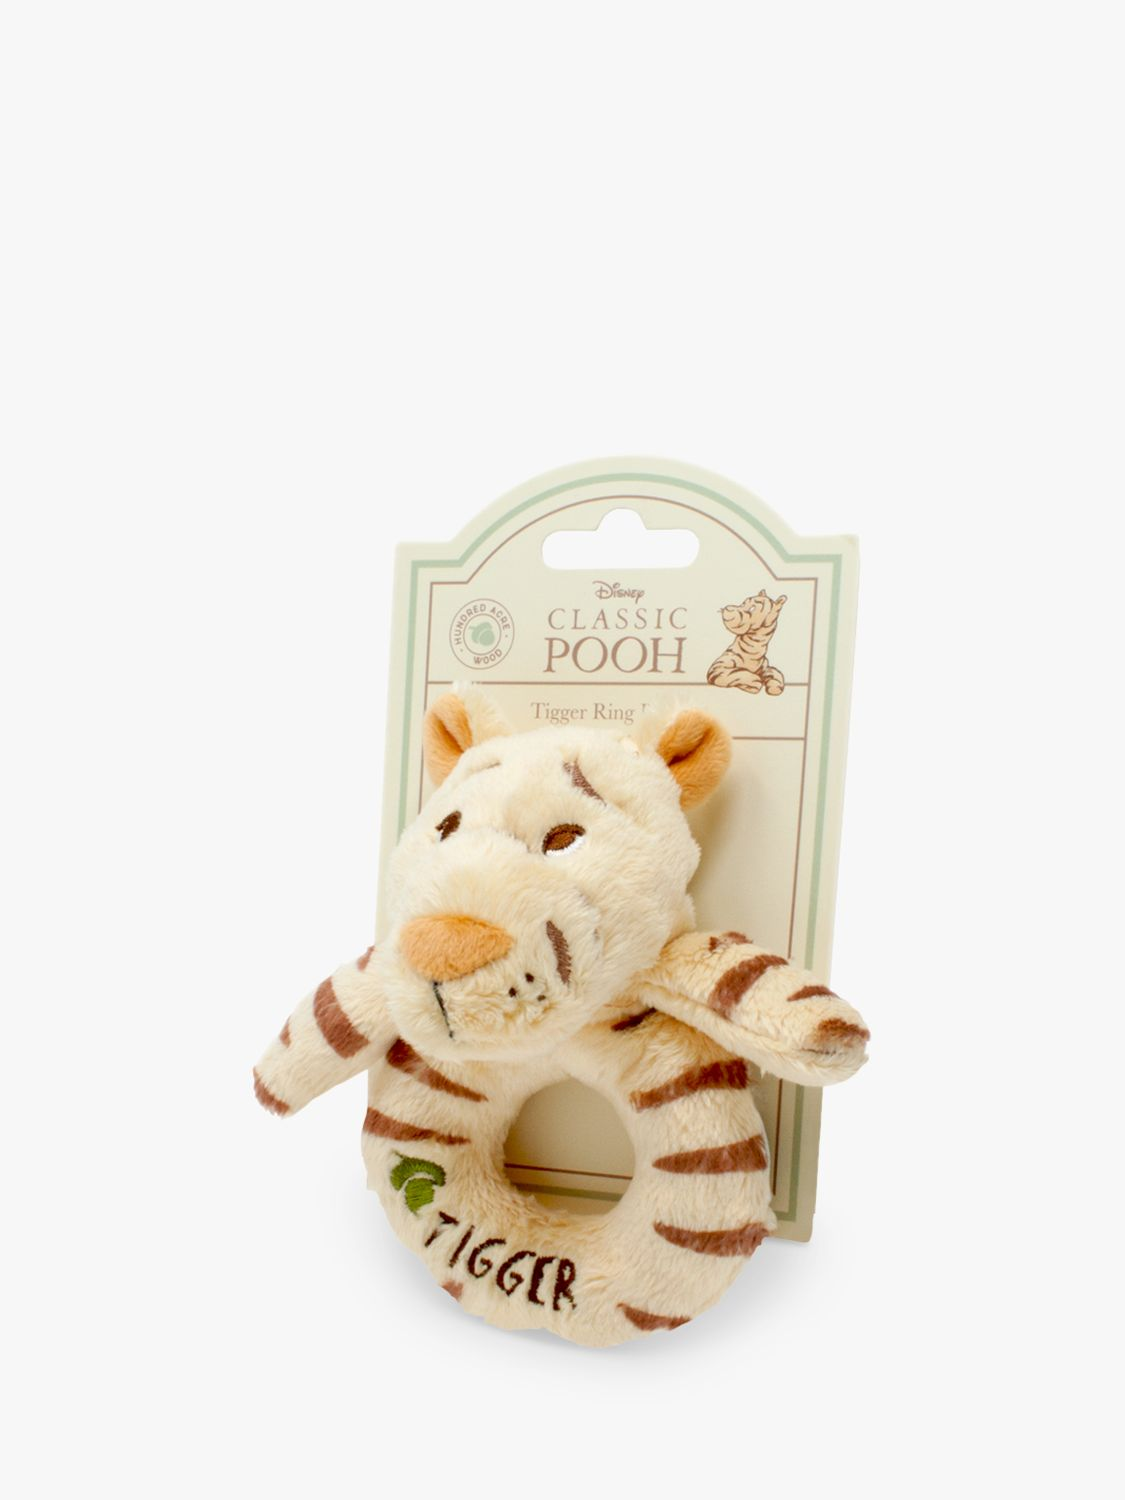 Winnie the pooh Winnie the Pooh Baby Tigger Ring Rattle